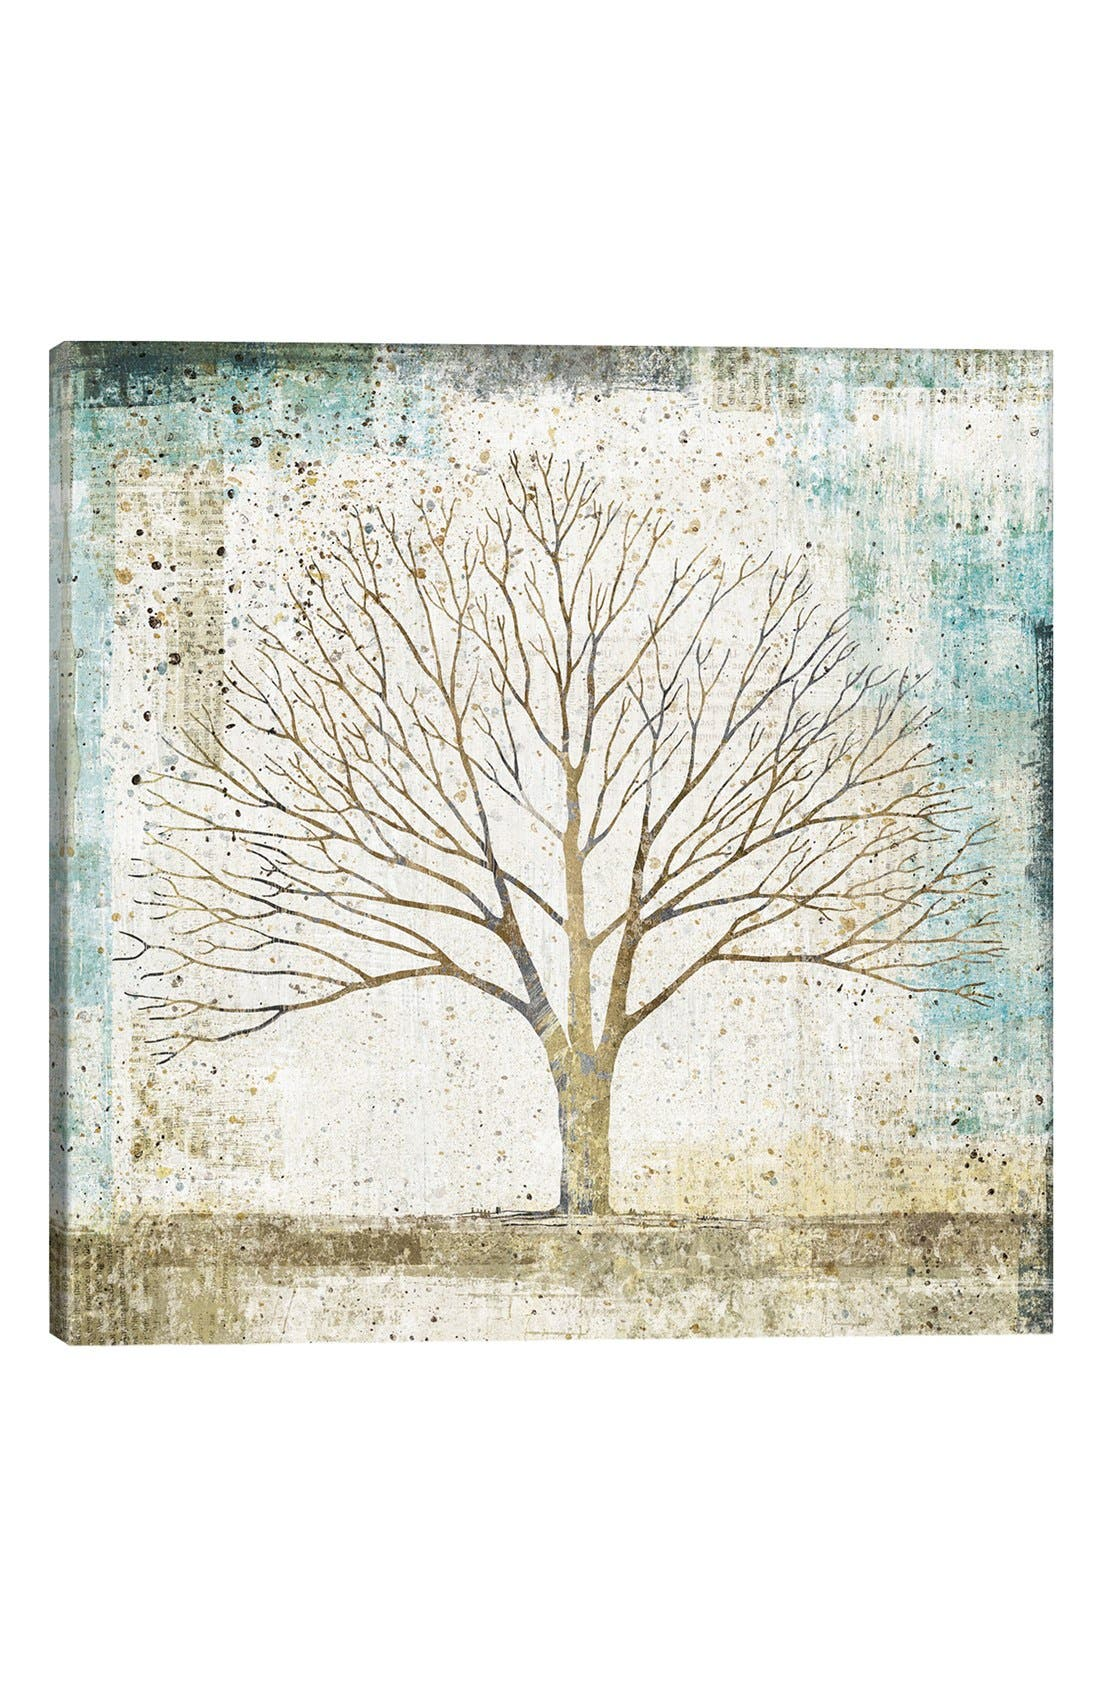 Alternate Image 1 Selected - iCanvas 'Solitary Tree' Giclée Print Canvas Art